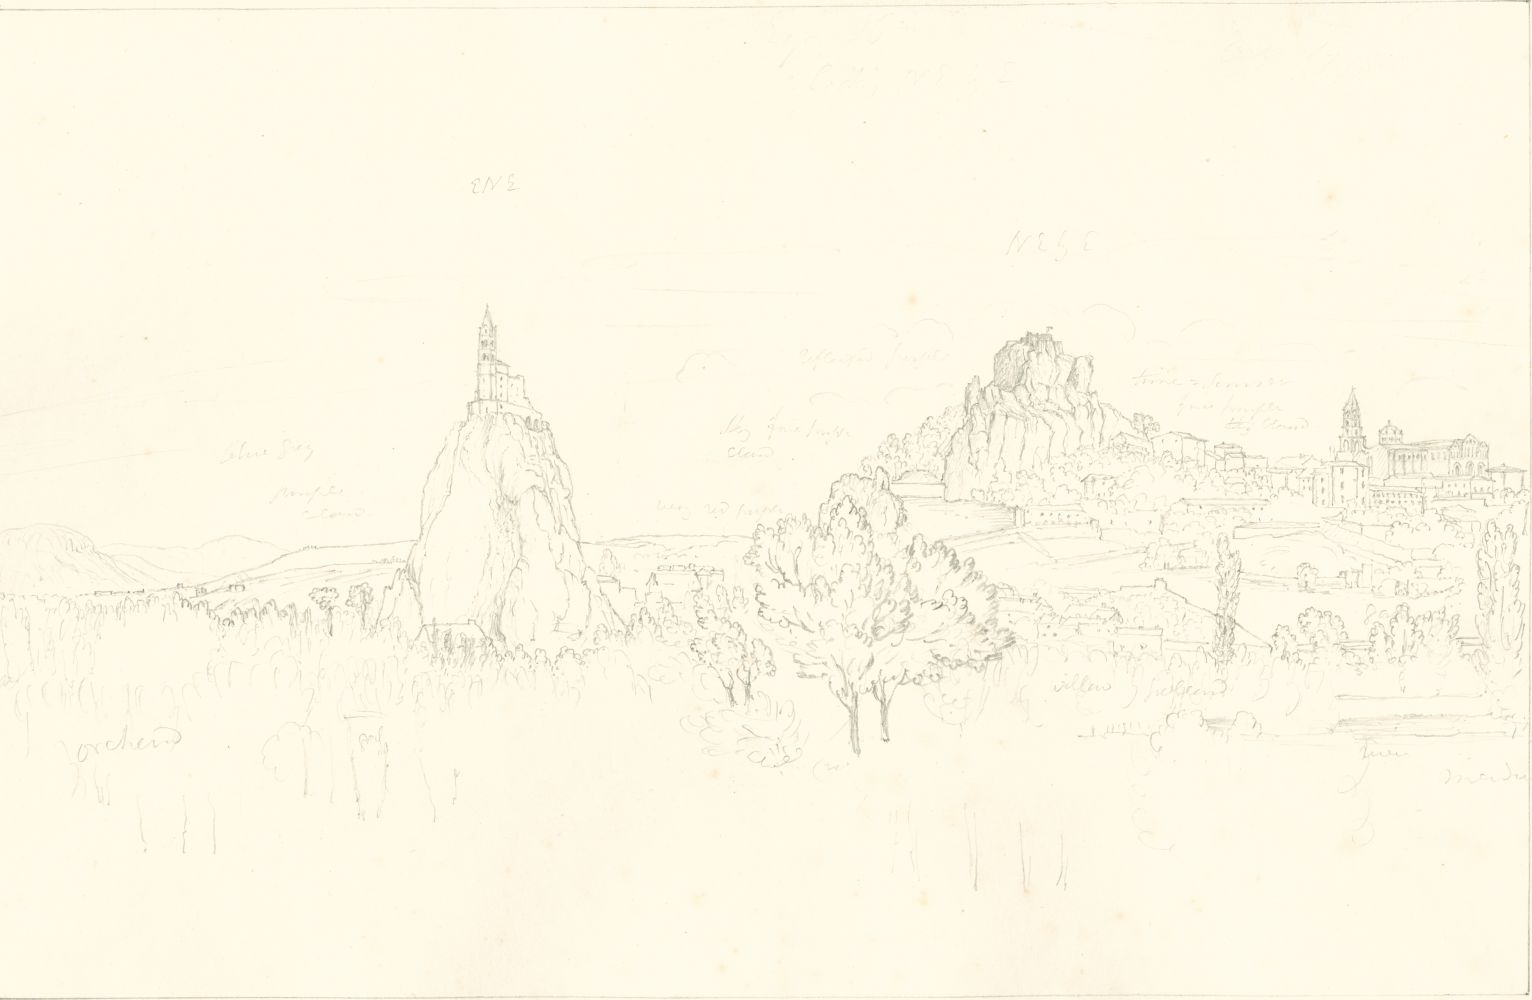 "Sir John Frederick William HERSCHEL (English, 1792-1872) ""No 495 Le Puy. From across the bridge. The Church of St Michel, The Rocher du Corneille & the Cathedral"", 19 October 1850 Camera lucida drawing, pencil on paper 21.6 x 33.3 cm on 25.2 x 38.5 cm paper Numbered, signed, dated and titled ""No 495 / JFW Herschel del. Cam. Luc. Oct. 19, 1850 / Le Puy. From across the bridge. The Church of St Michel bearing ENE, The Rocher du Corneille NE by E. / (by compass) & the Cathedral"" in ink in border"